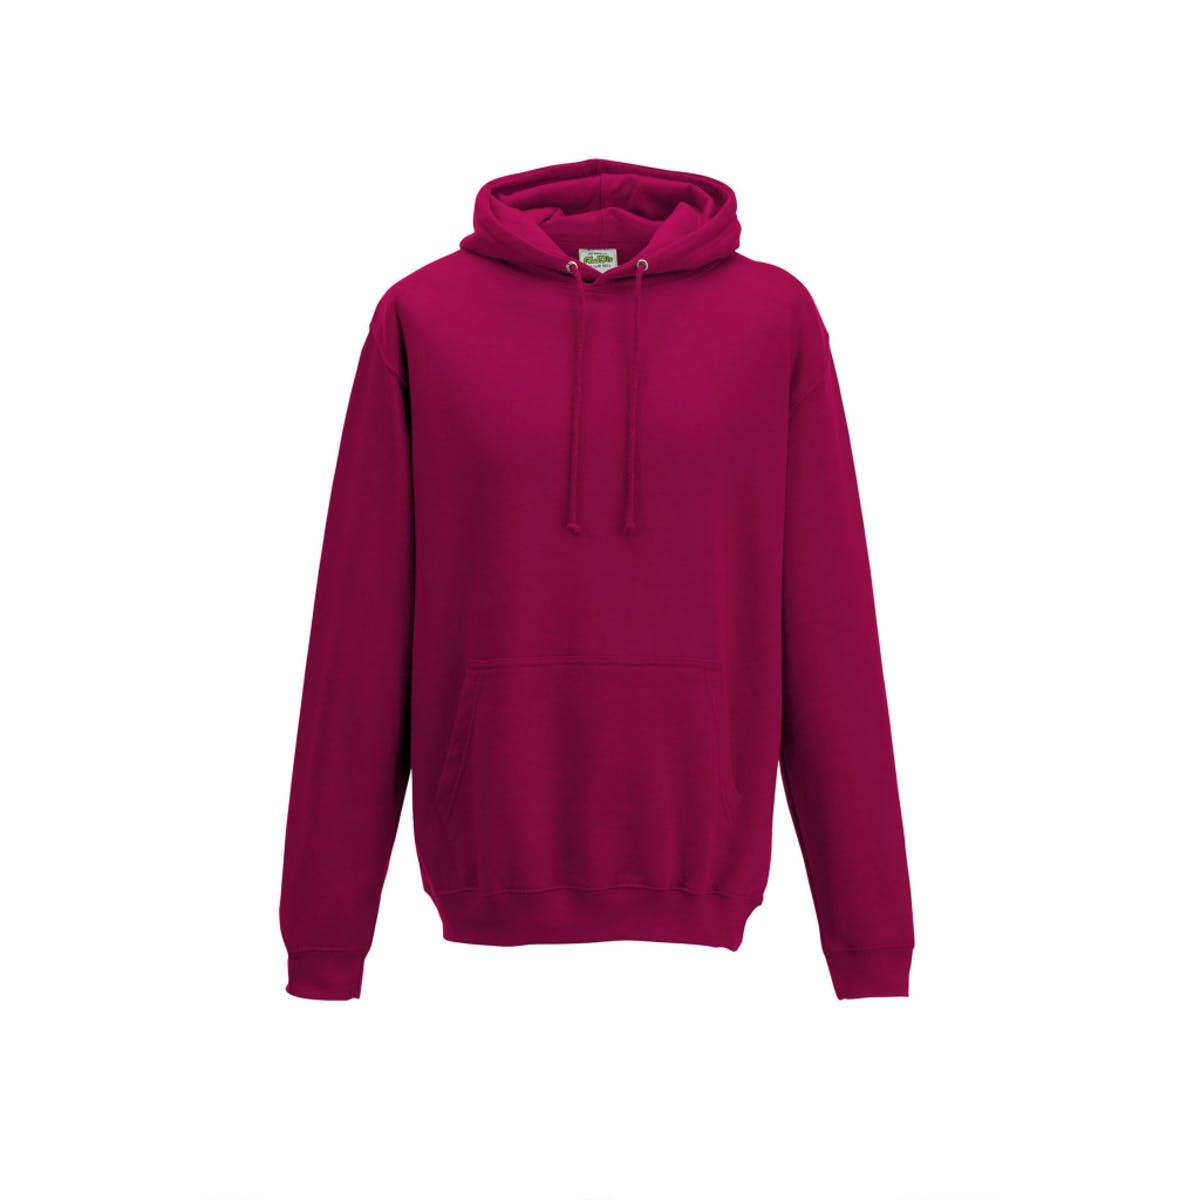 cranberry college hoodies